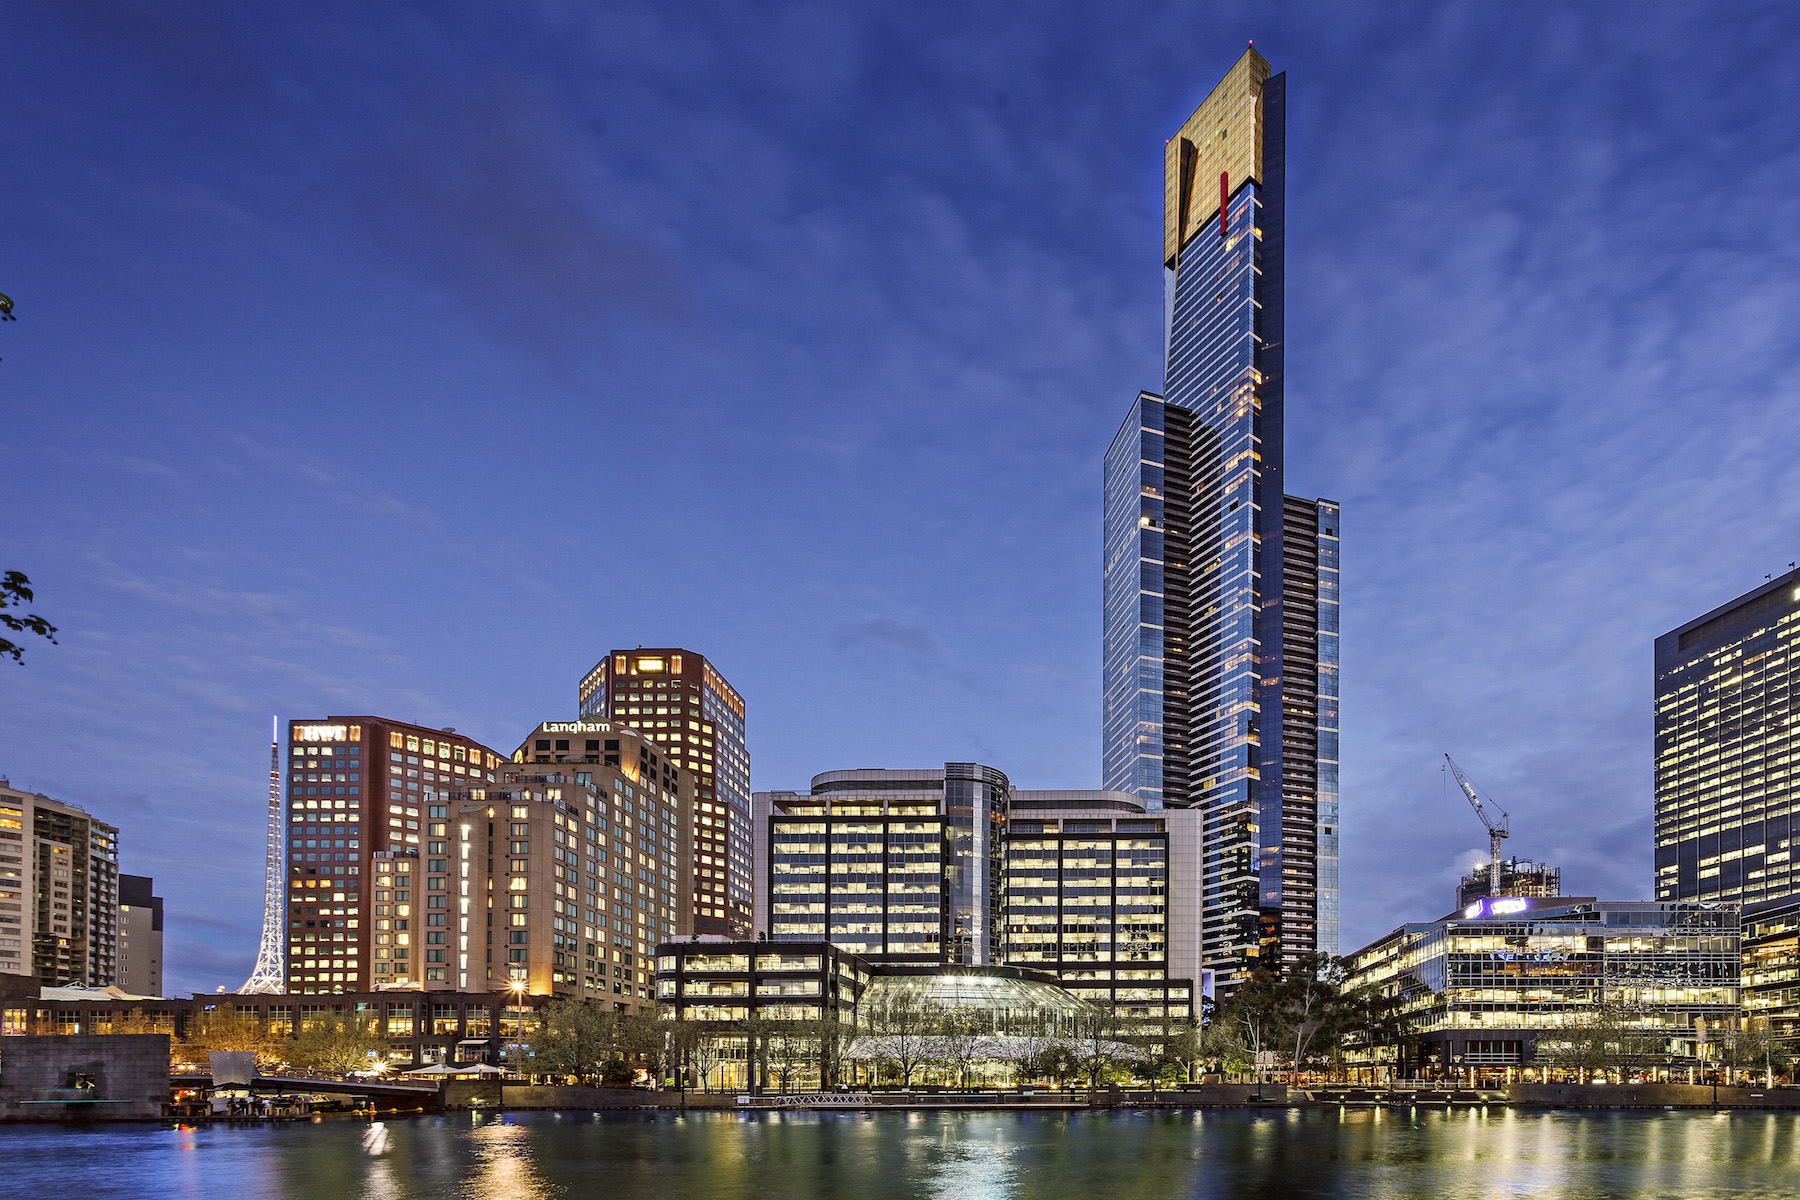 Appartement à vendre en Level 86 7 Riverside Quay, Melbourne, Victoria   , Australie